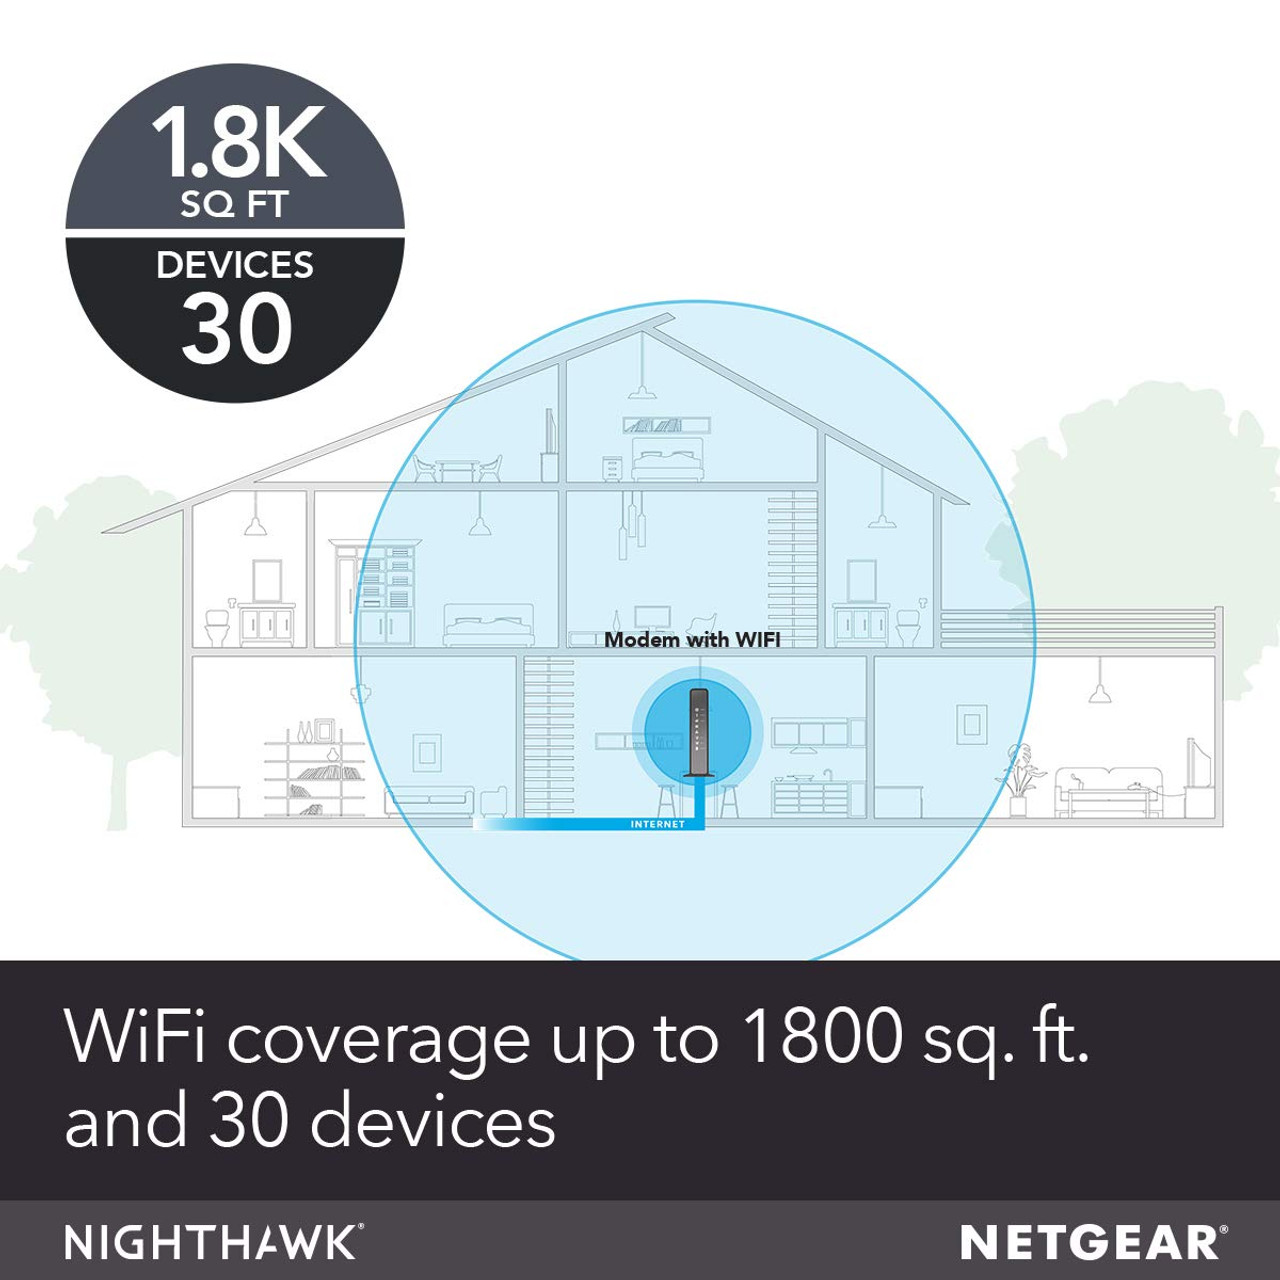 NETGEAR C7100V-100NAR Nighthawk AC1900 WiFi DOCSIS® 3.0 Cable Modem on verizon fios wiring diagram, direct tv wiring diagram, xfinity network diagram, xfinity phone wiring diagram, dish network wiring diagram, xfinity cable guide,